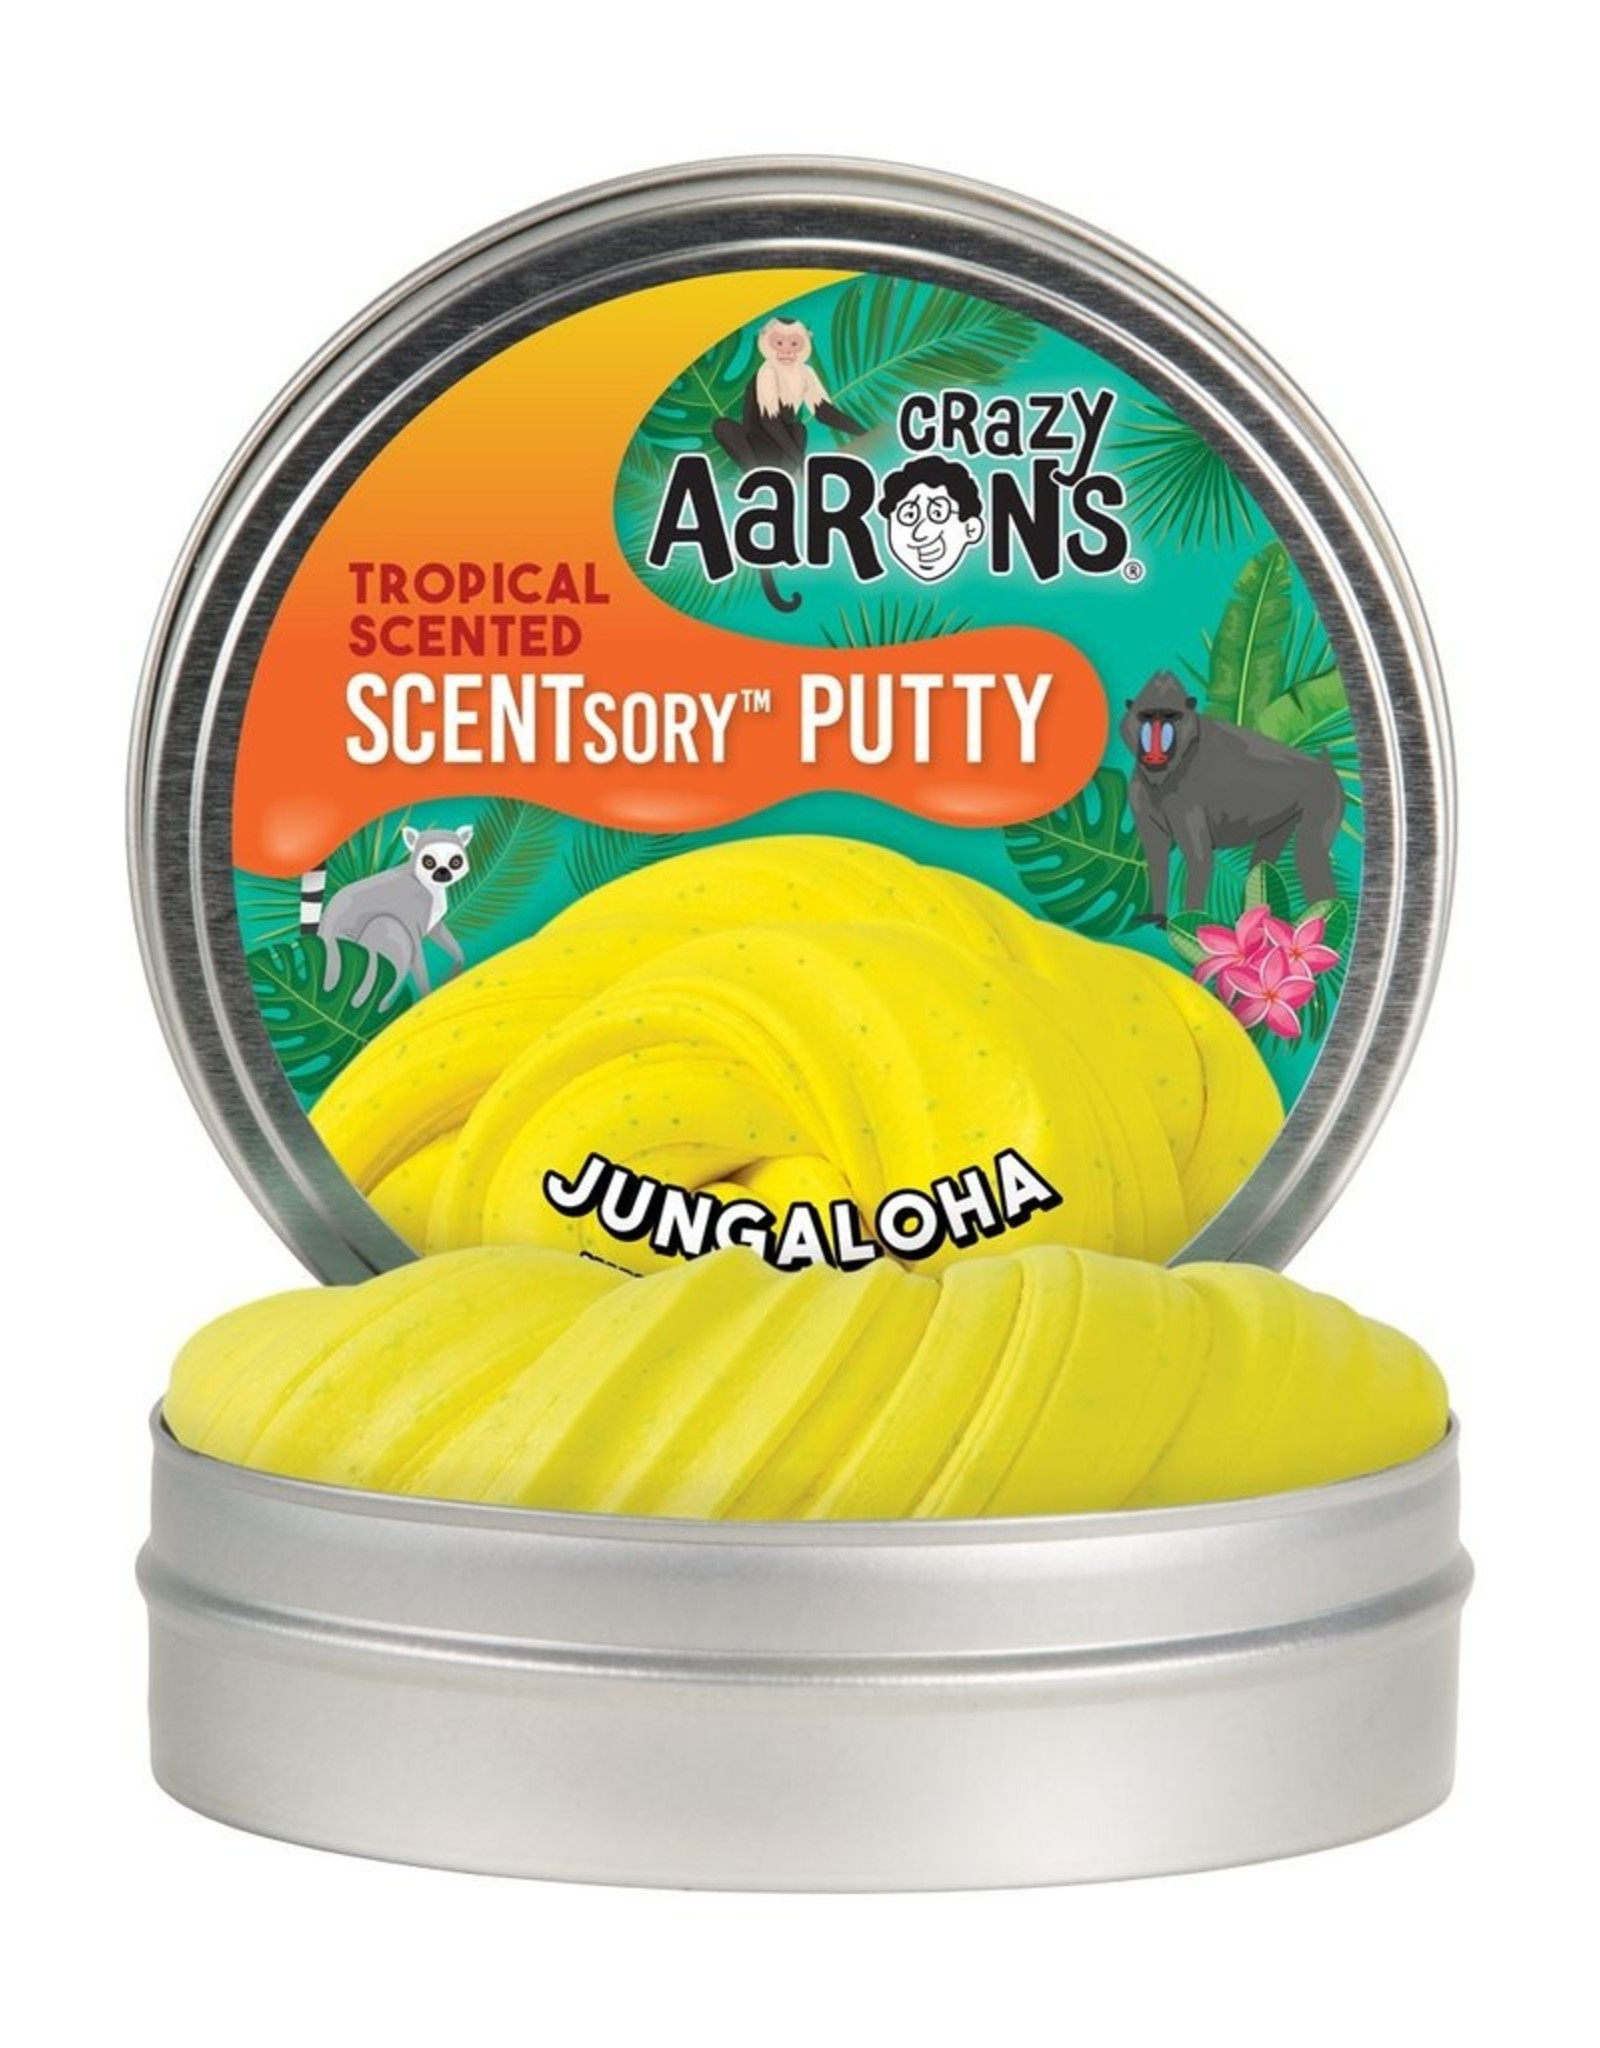 Crazy Aaron's Putty Scentsory Putty: Summer -